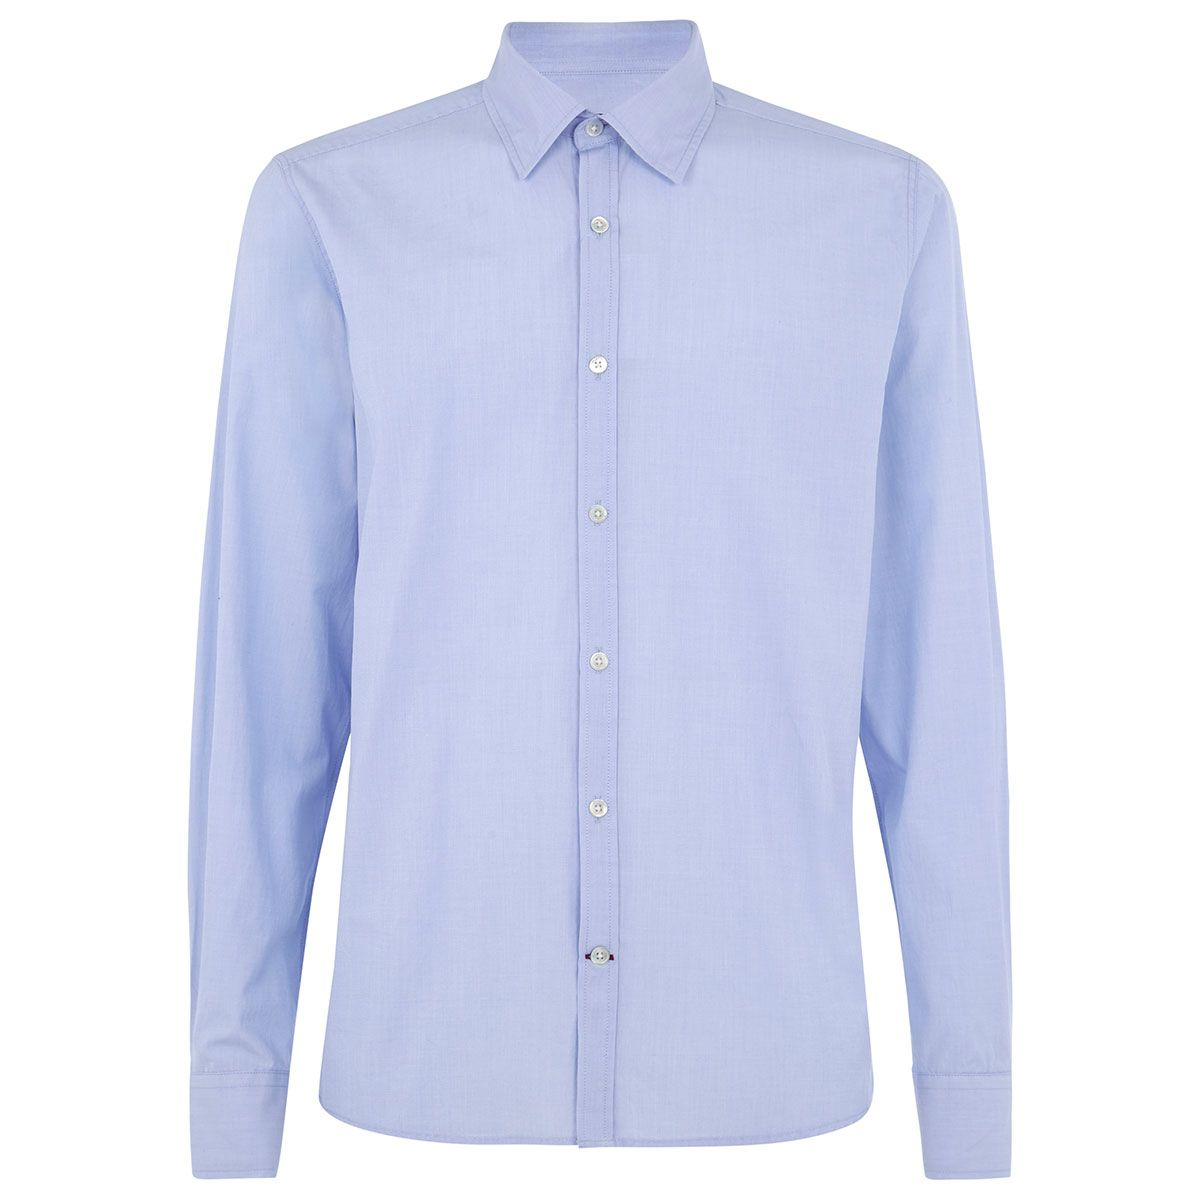 Oliver Sweeney Estoi Pale Blue - Pointed Collar Shirt